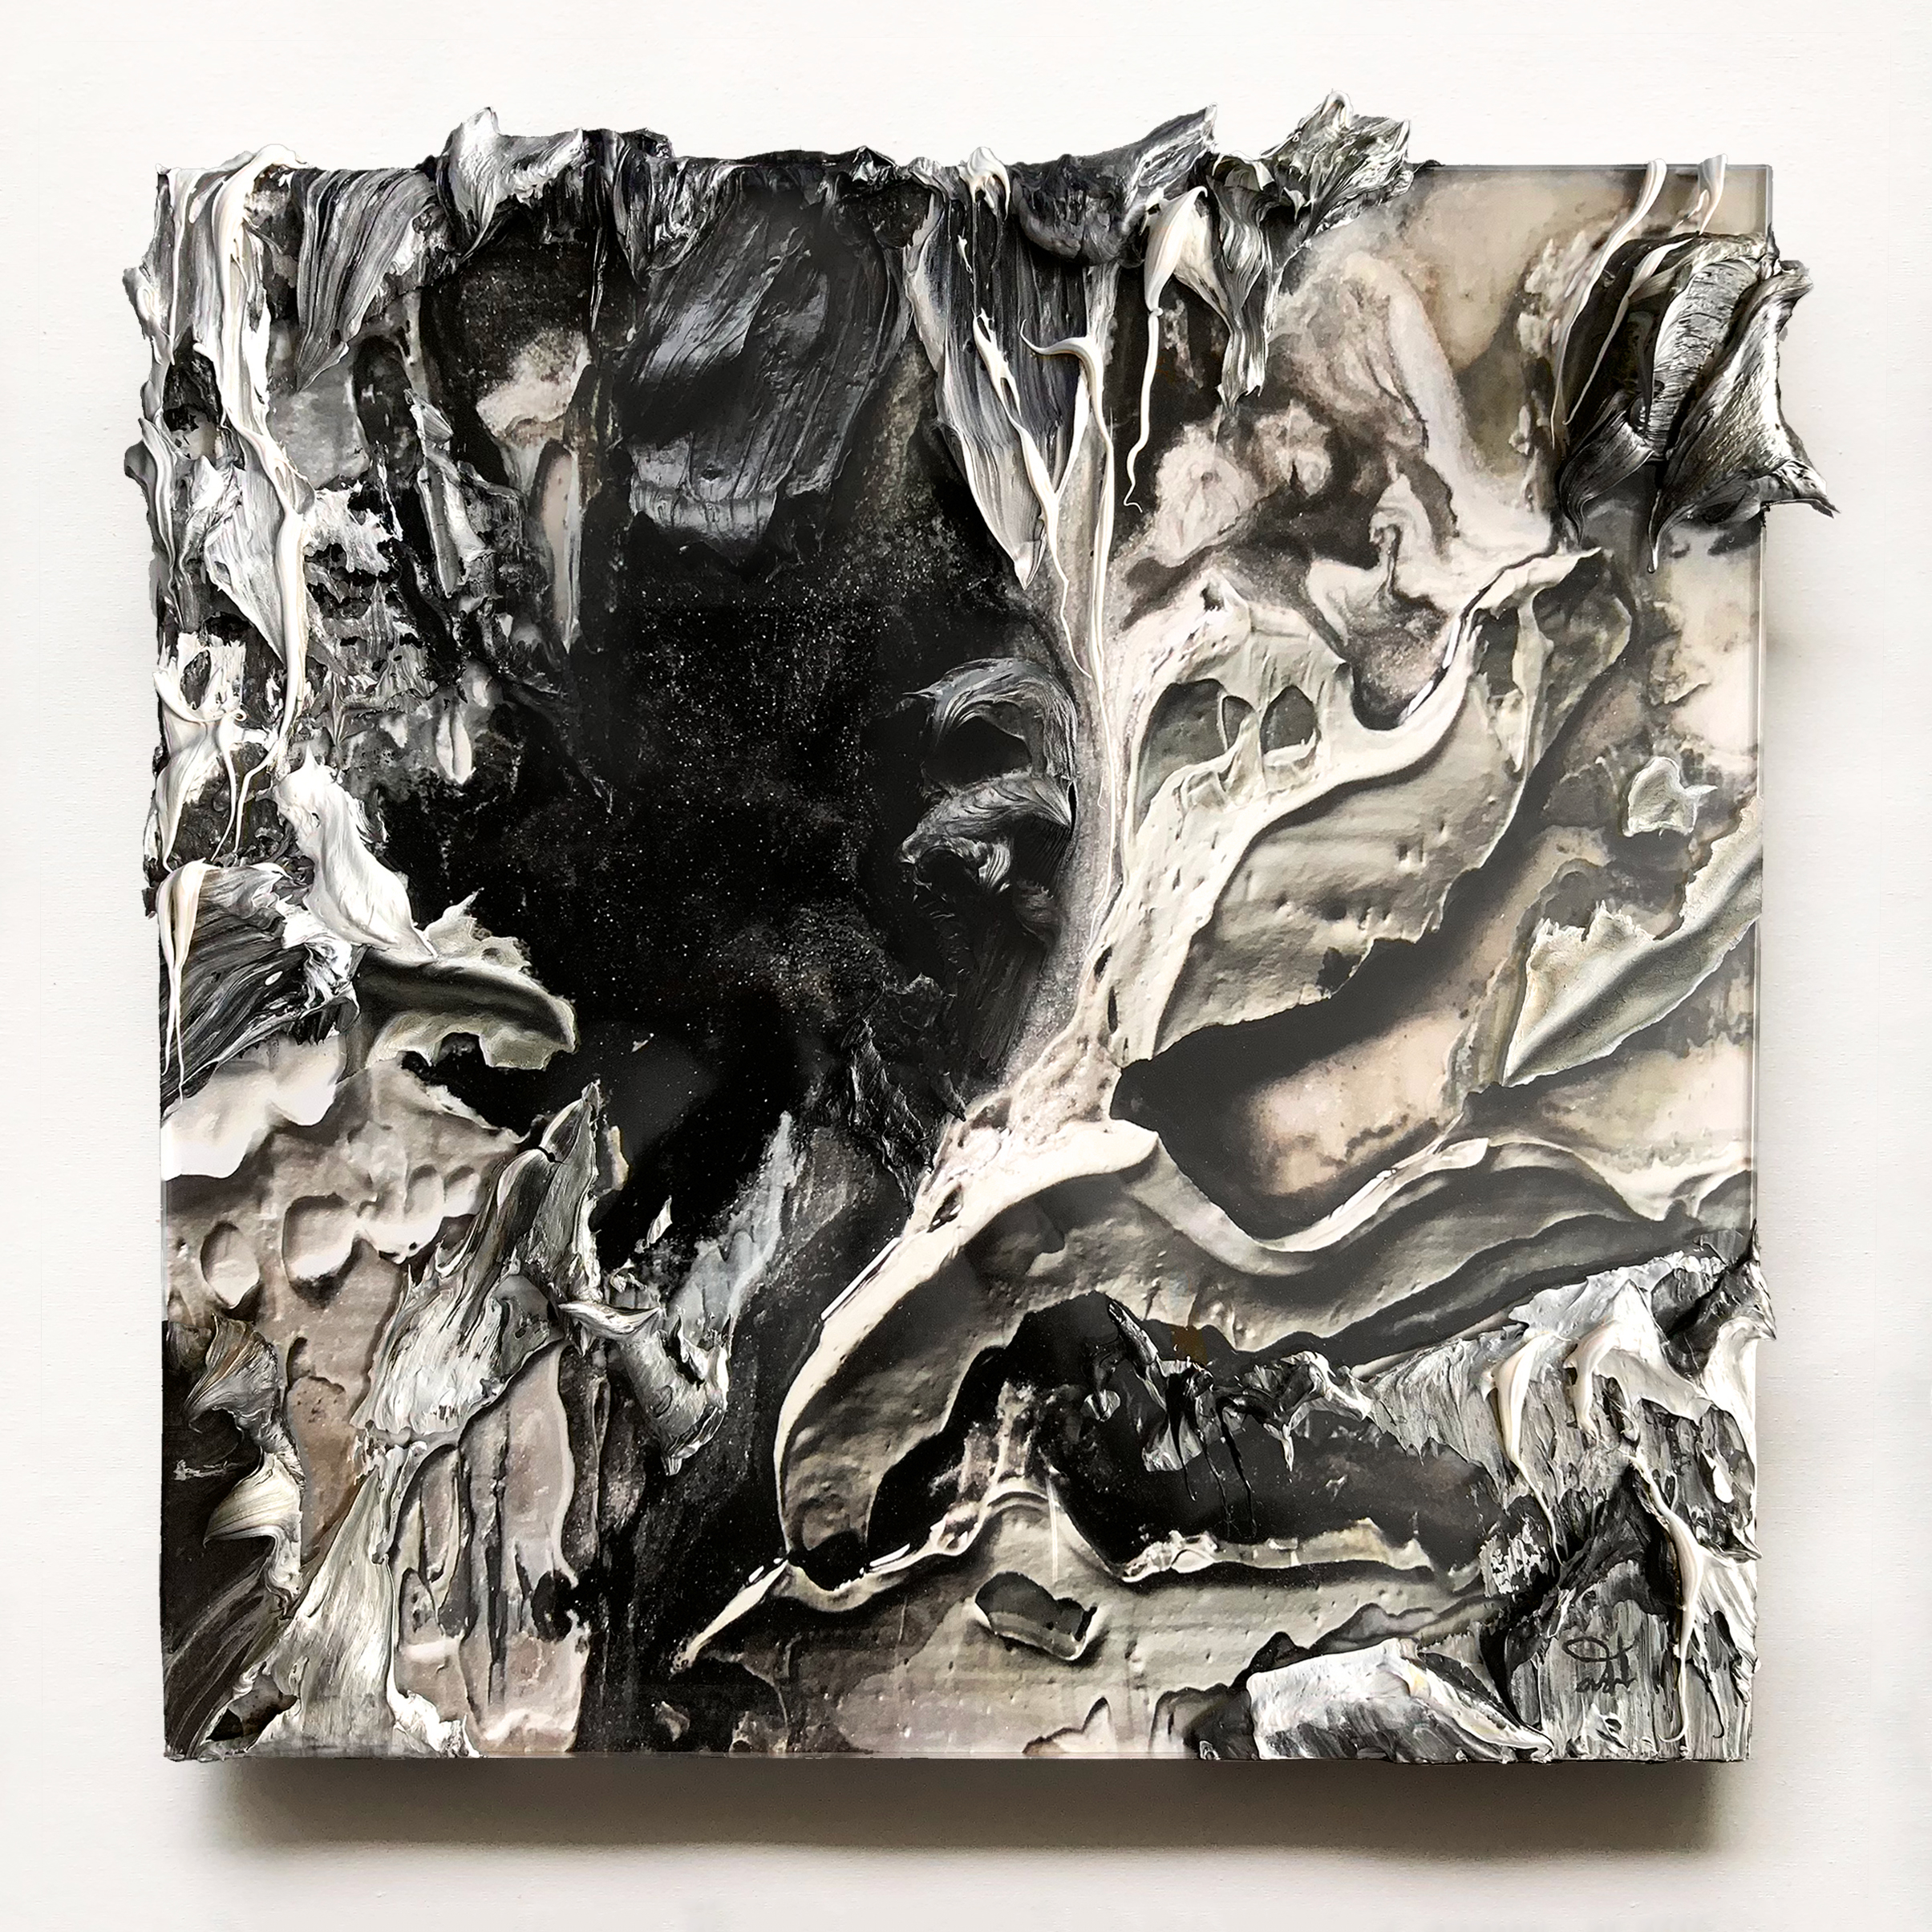 Avalanche II - 2019Oil on C-type print, Facemount glossy plexi / alu-dibond 2+3 mm400 x 400 mm18000 ZAR